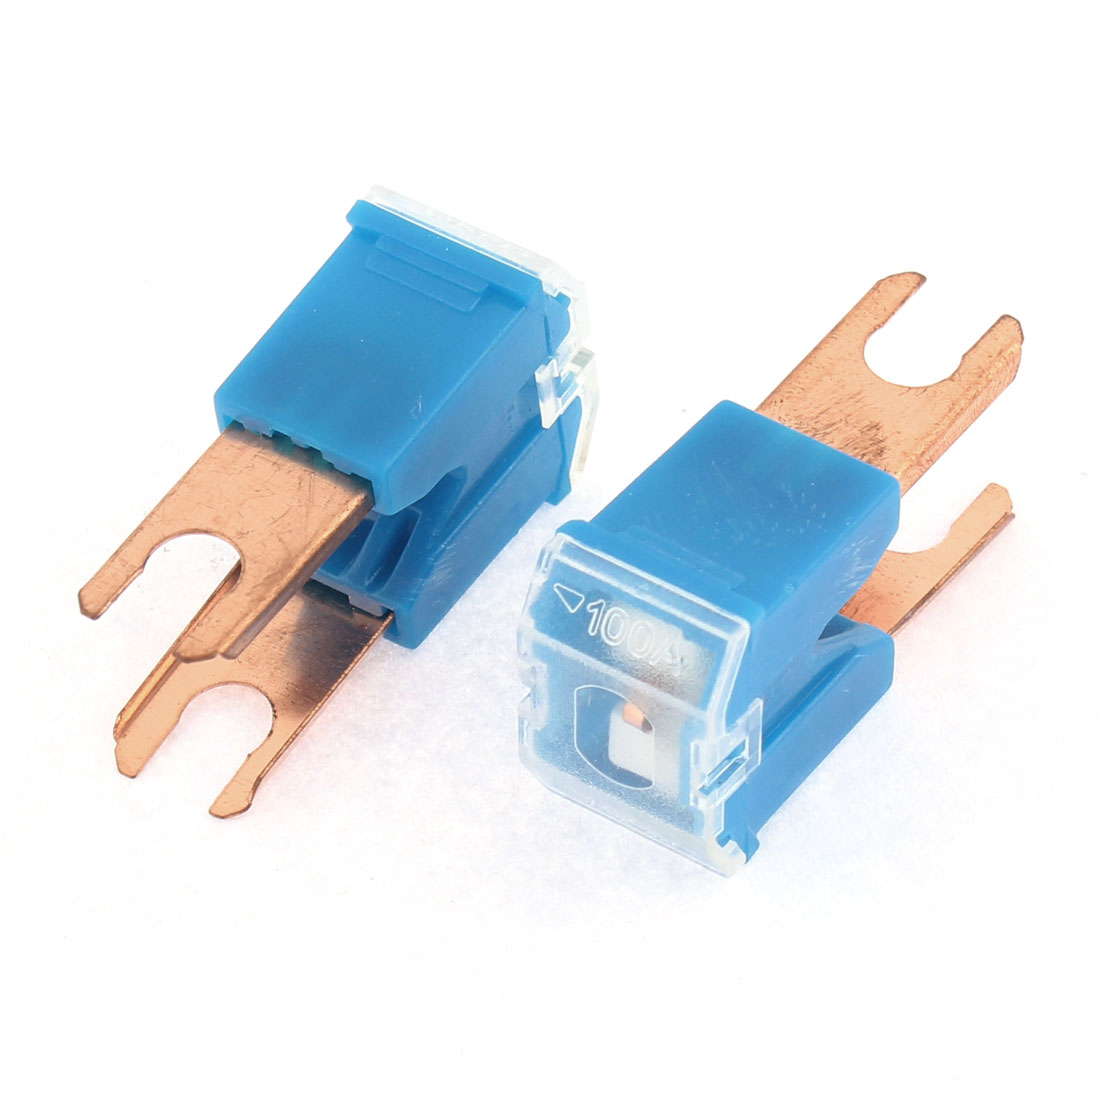 Plastic Shell 2 Terminals Straight PAL Slow Blow Male Fuse DC 32V 100A 2pcs - image 1 of 1